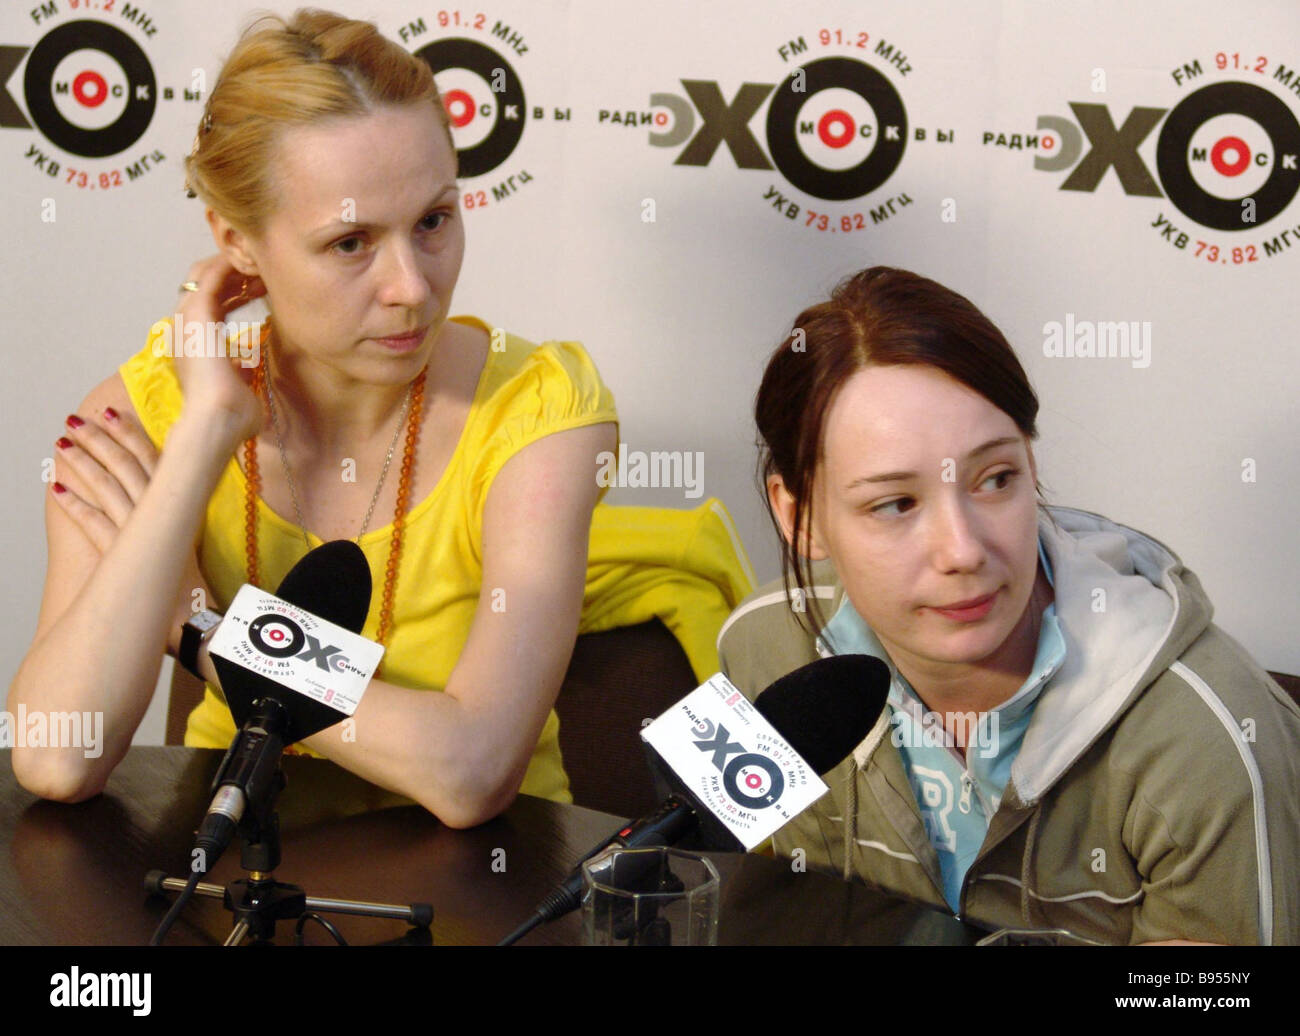 Chulpan Khamatova and Dina Korzun were proposed to be nominated for the Nobel Prize 16.04.2012 7